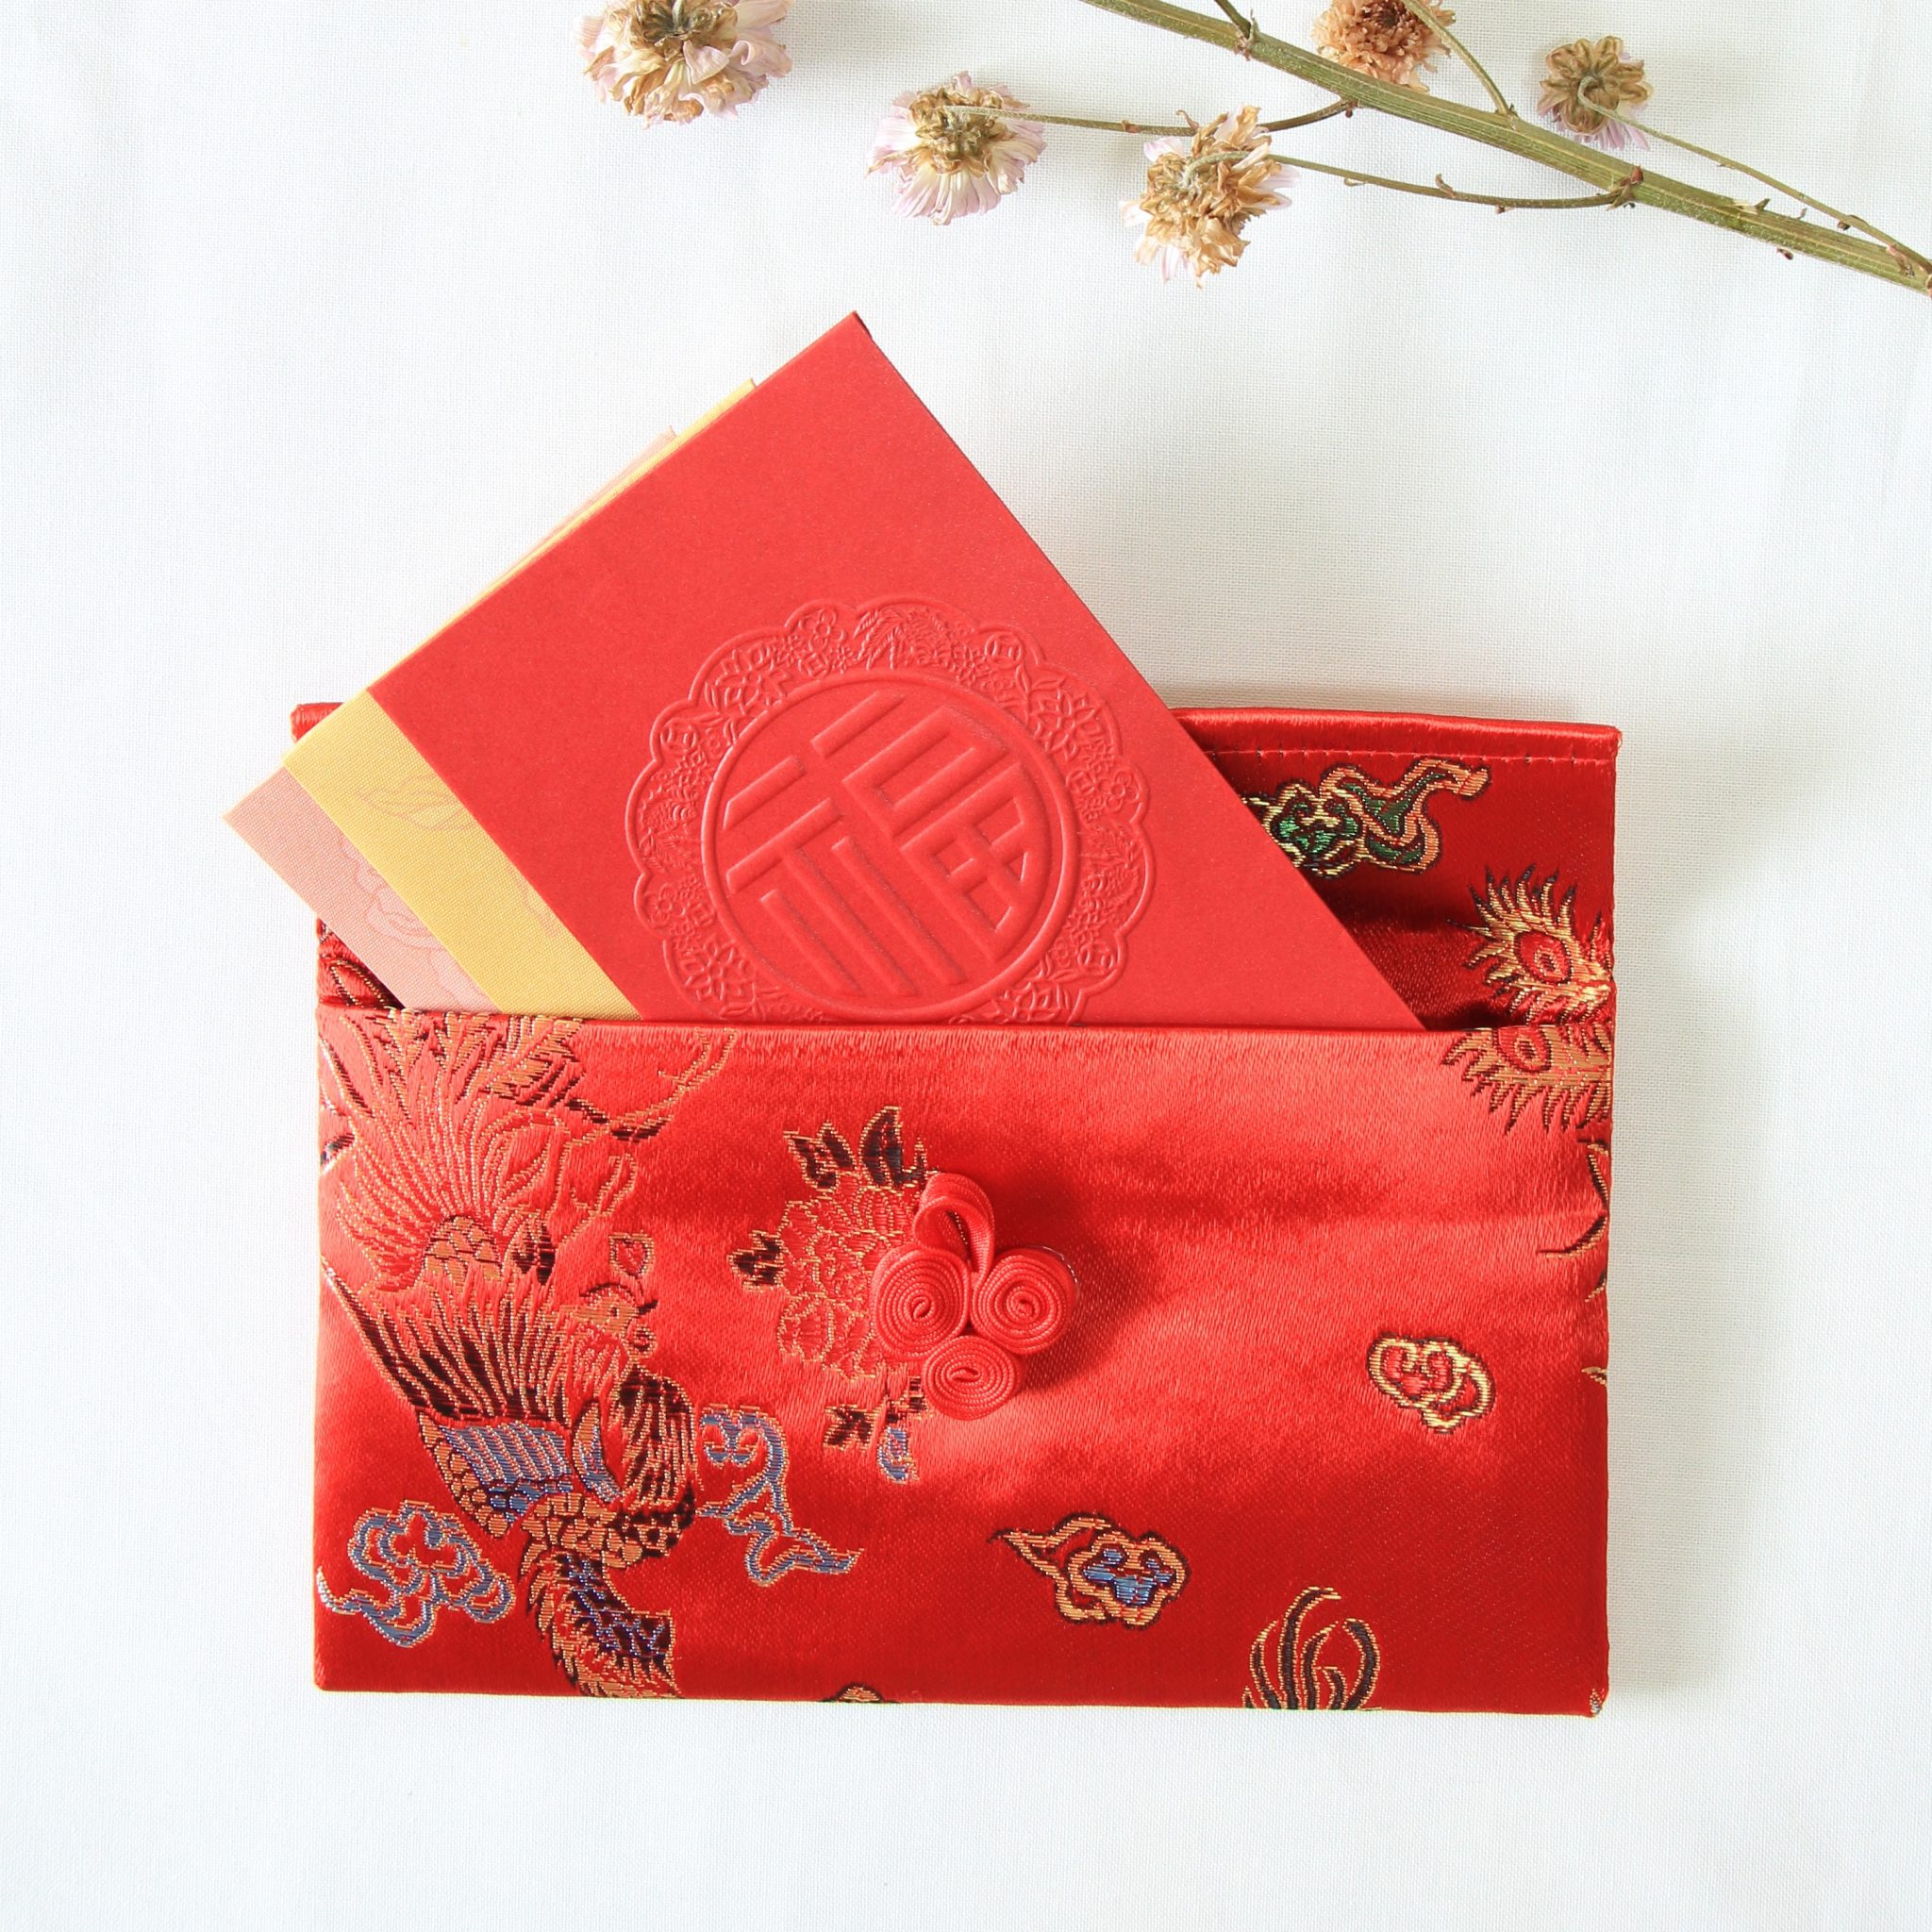 red packet organizer organiser pouch holder ang hong bao chinese new year 2018 style degree sg singapore